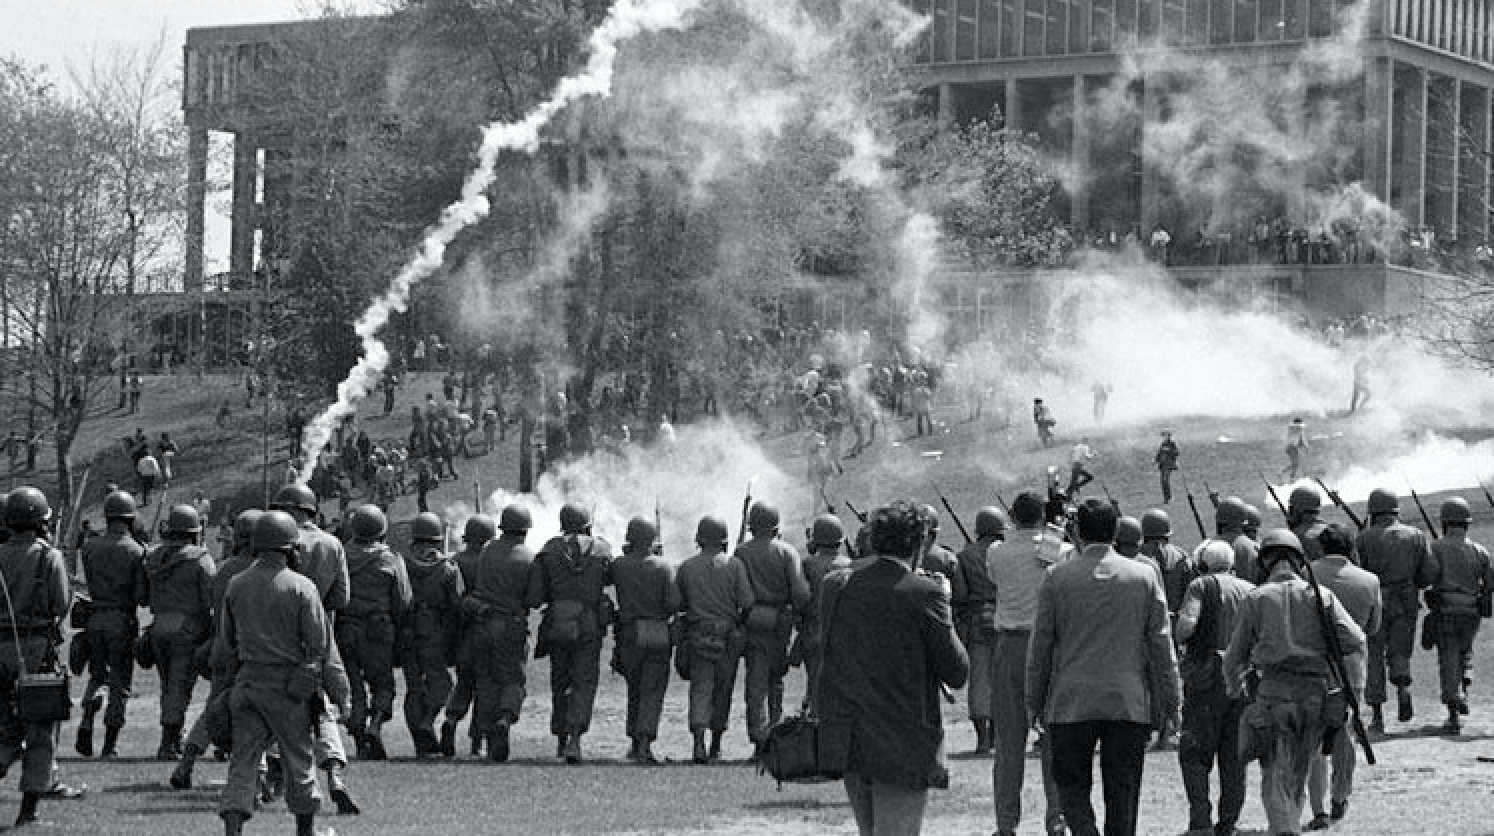 historic photo from May 4, 1970